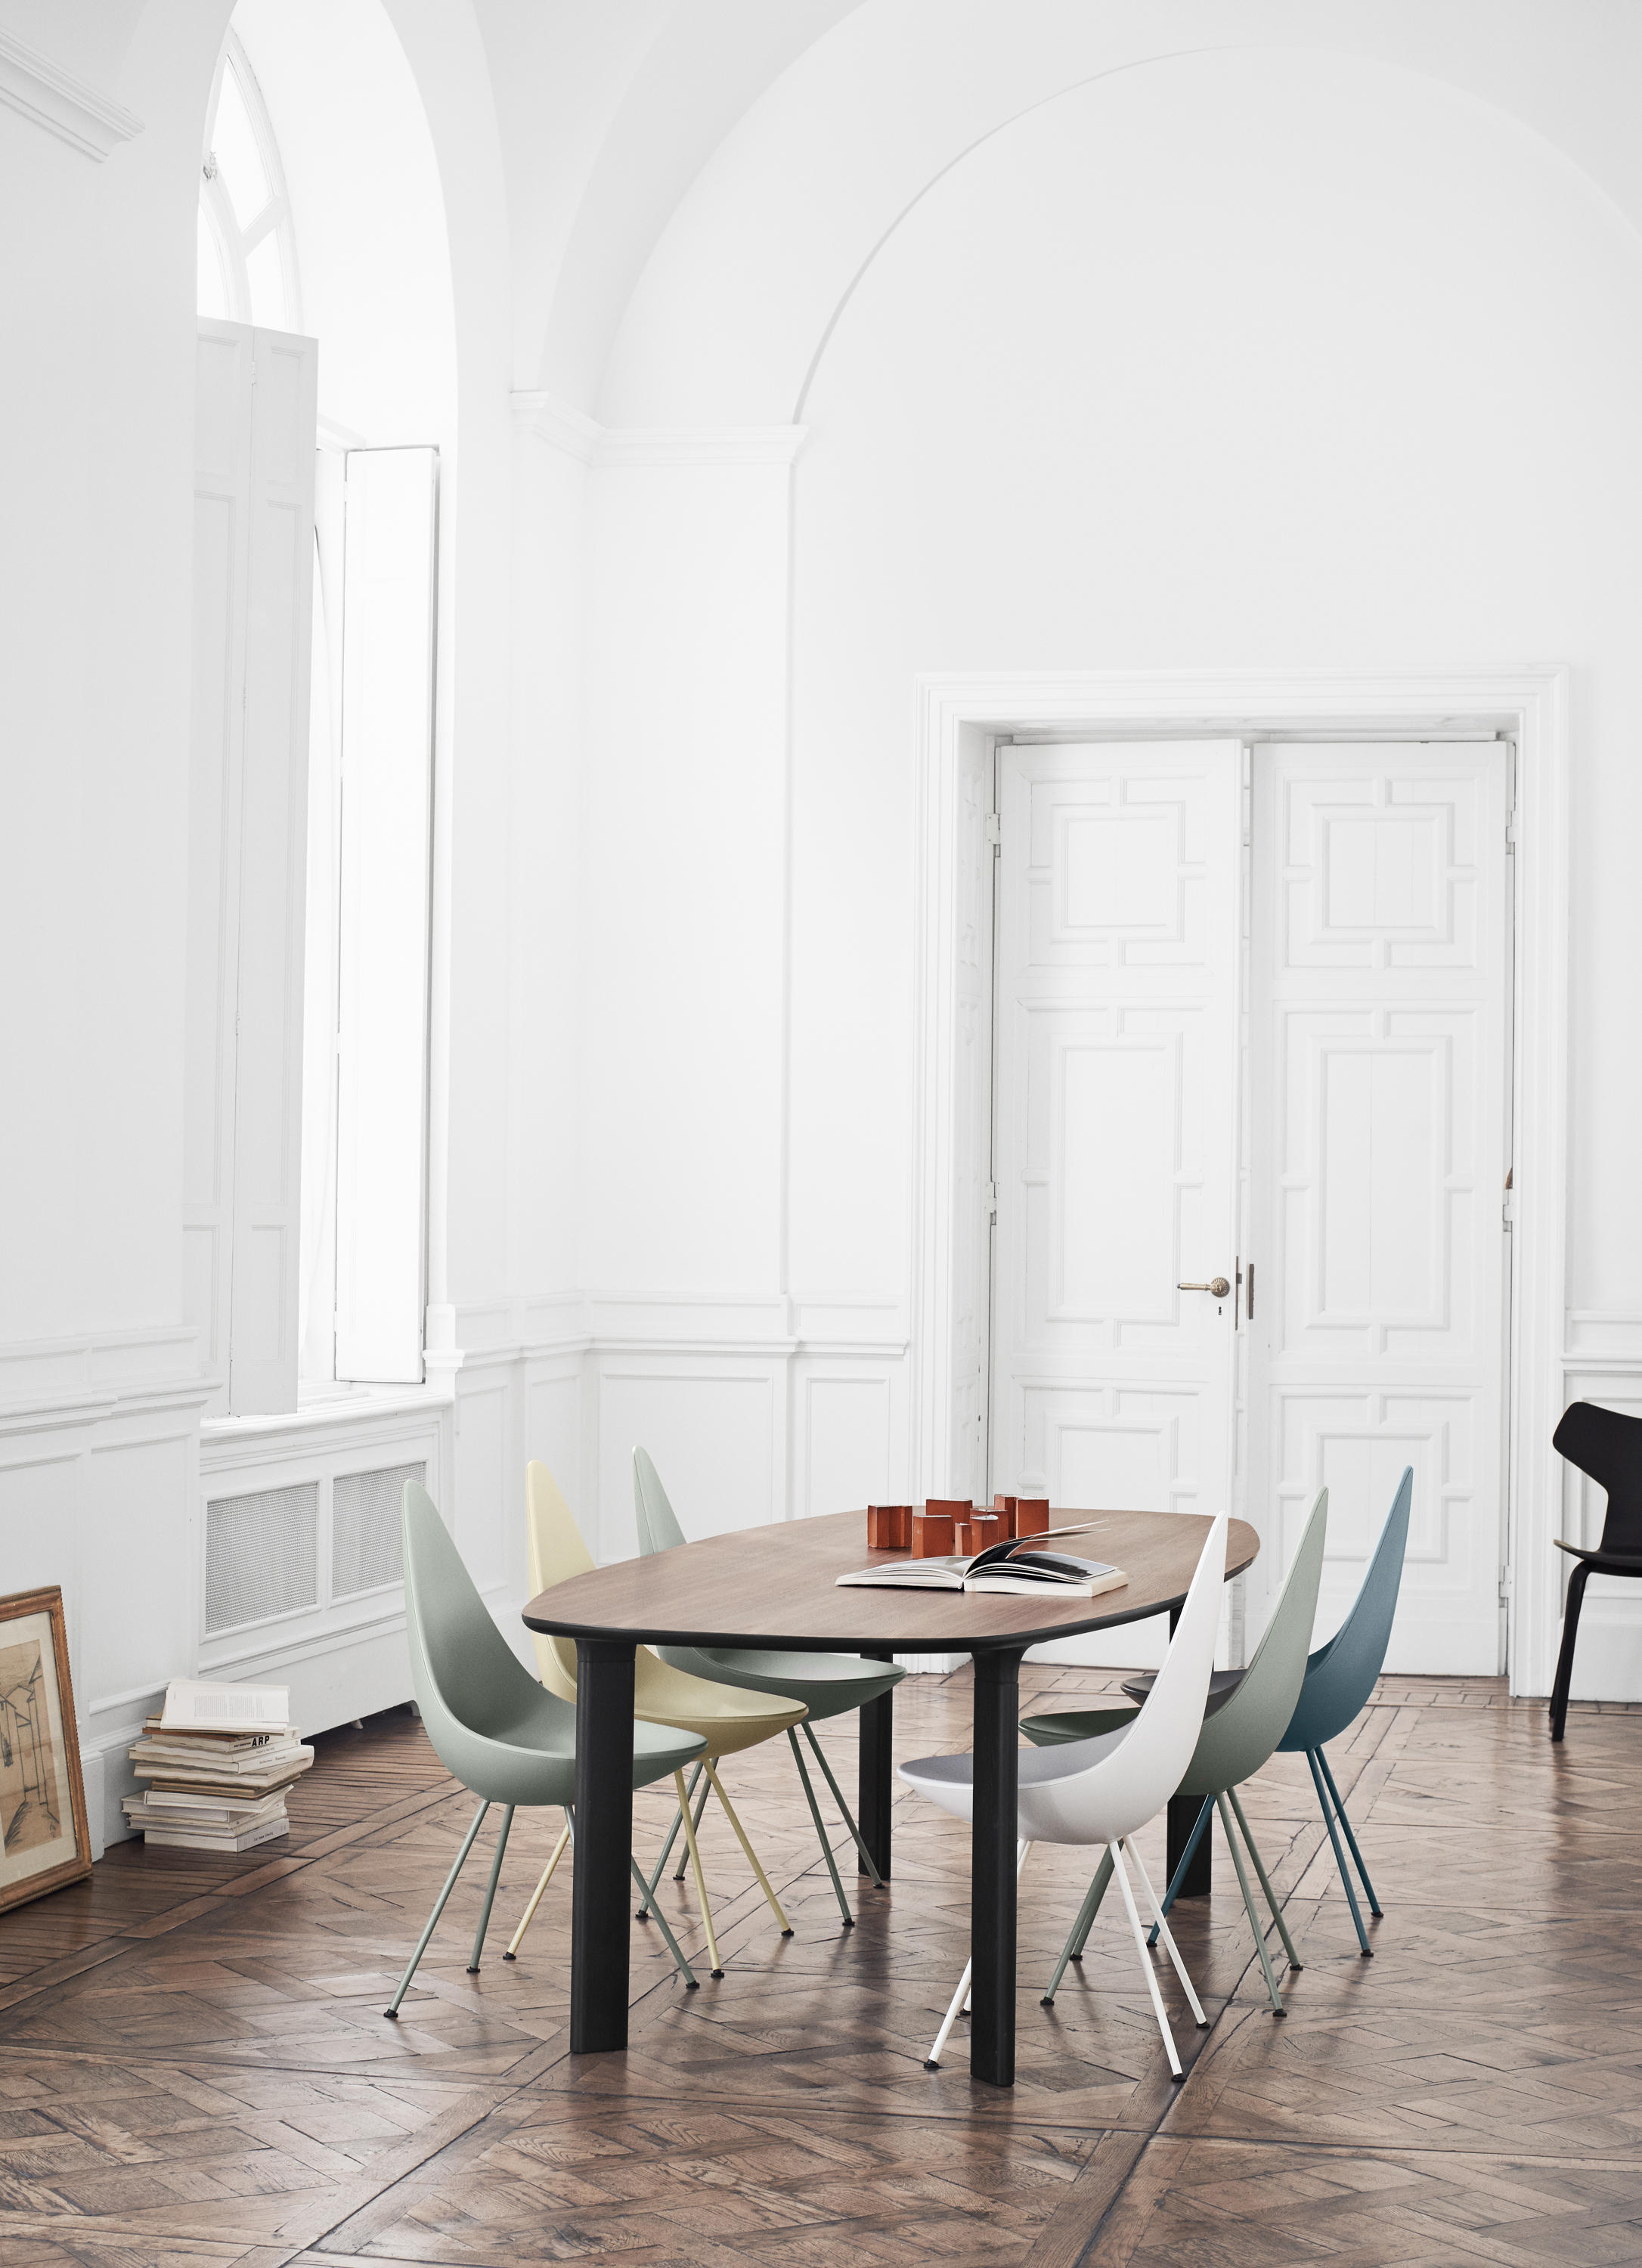 analog jh63 dining tables from fritz hansen architonic. Black Bedroom Furniture Sets. Home Design Ideas